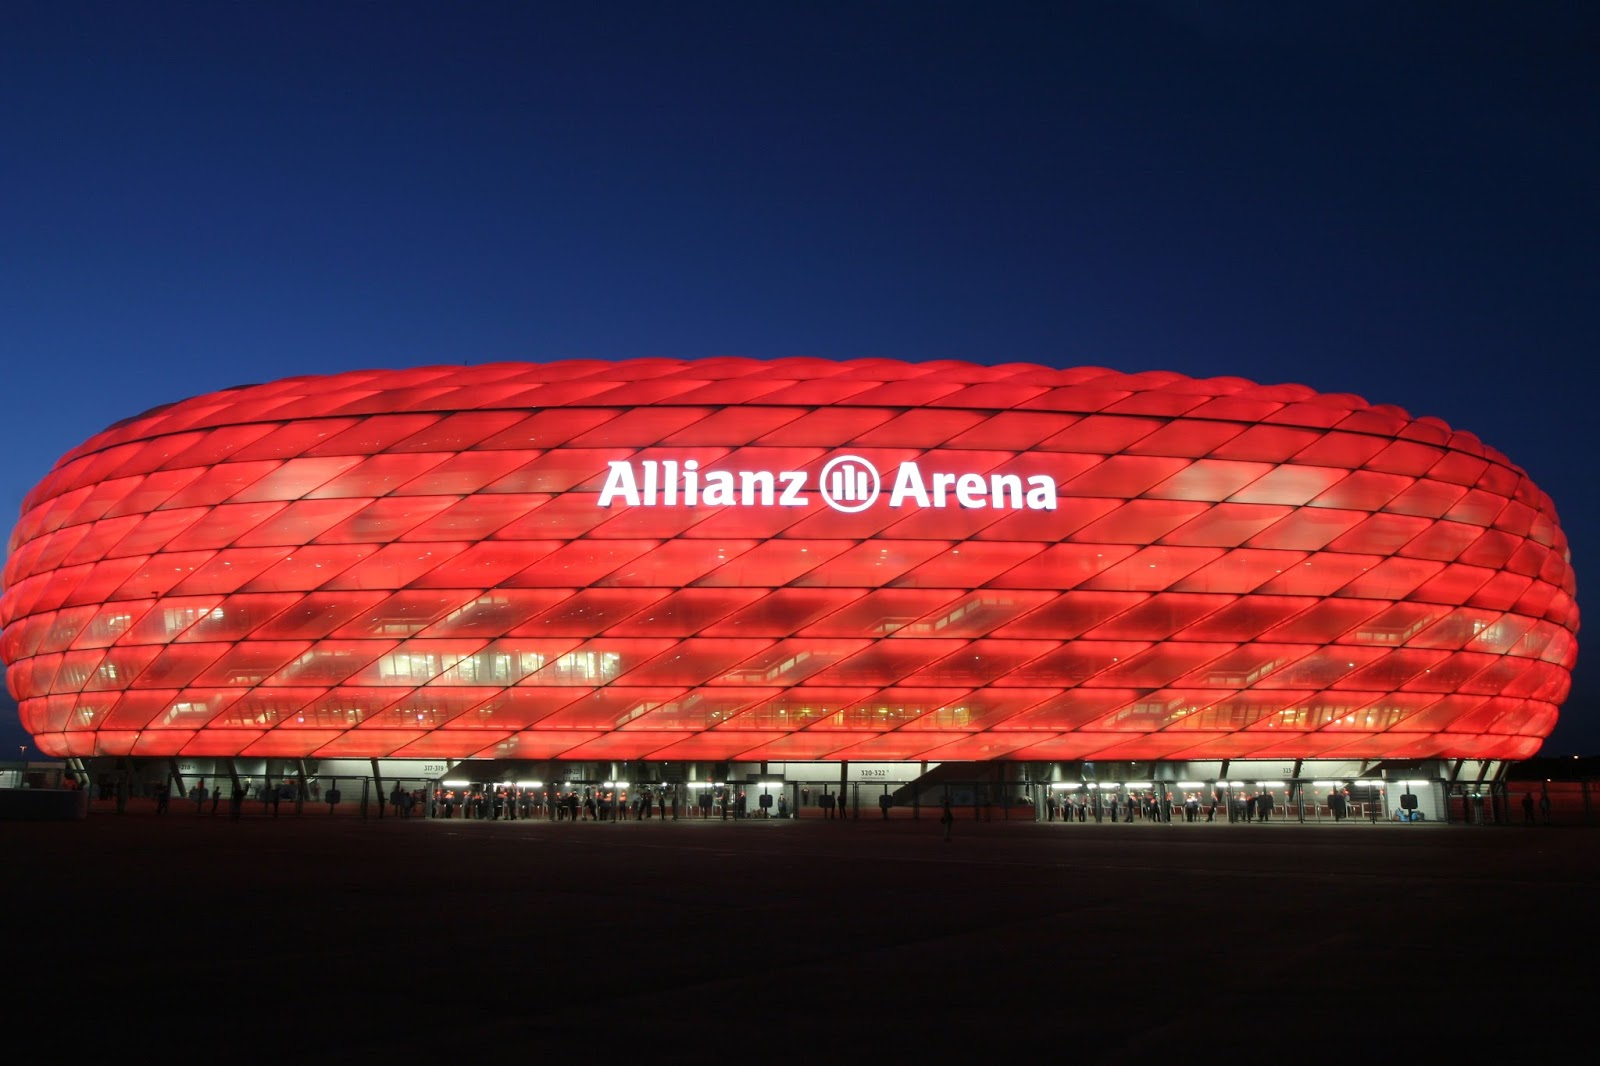 bilancio 2011 12 allianz arena m nchen stadion perdita da. Black Bedroom Furniture Sets. Home Design Ideas